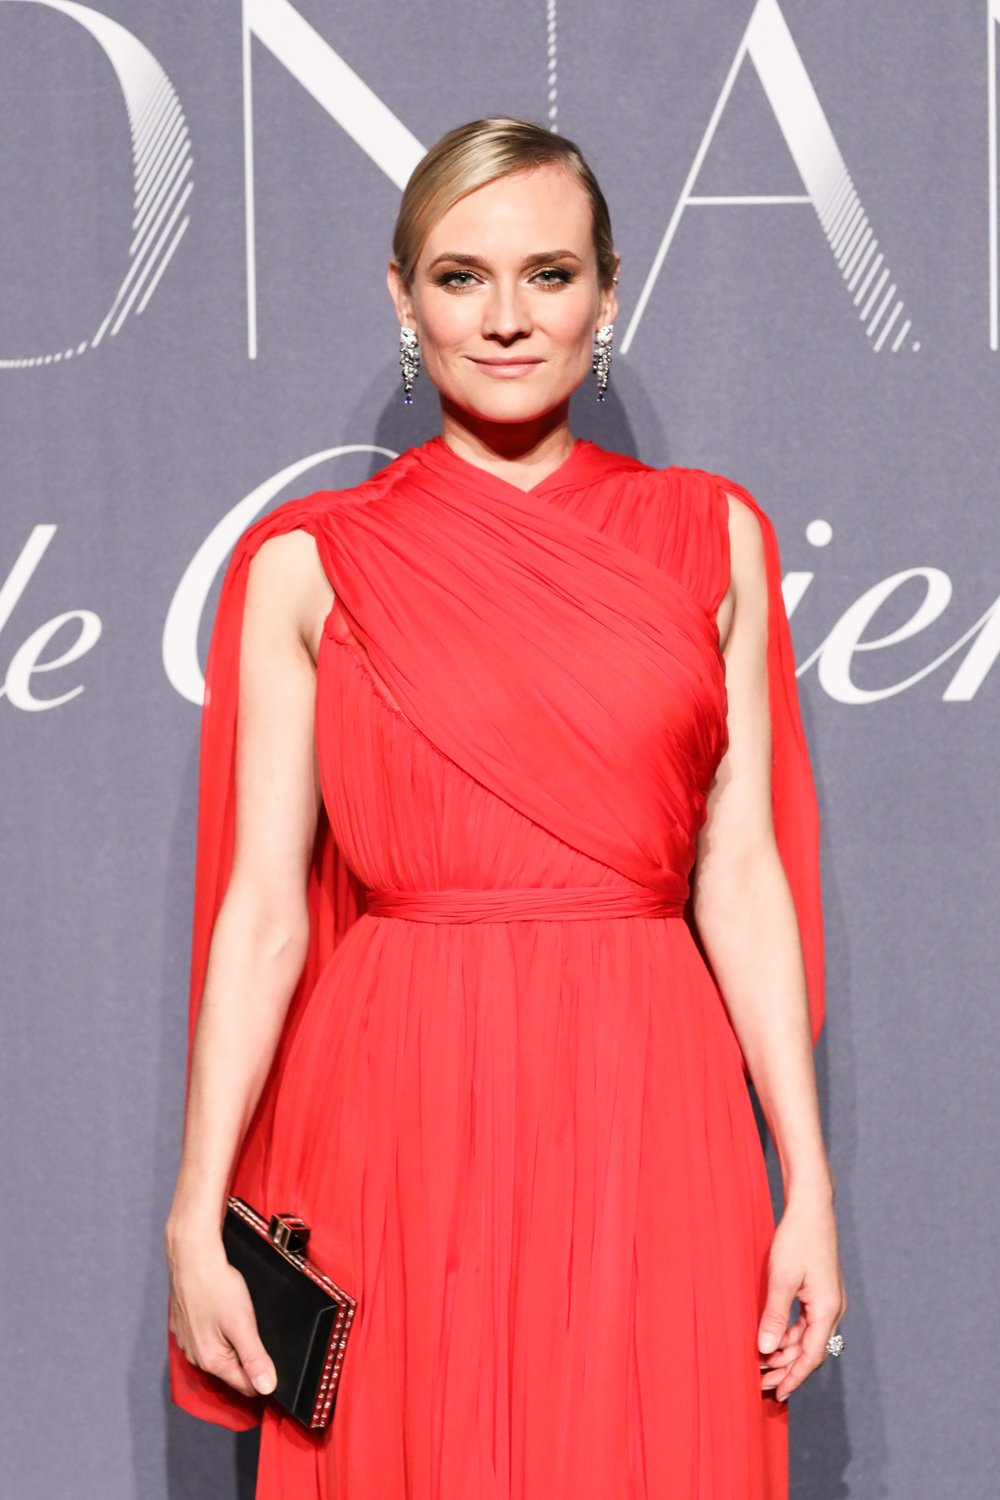 "Resonances de Cartier-Gala Dinner-Red Carpet (Diane Kruger)"".jpg"